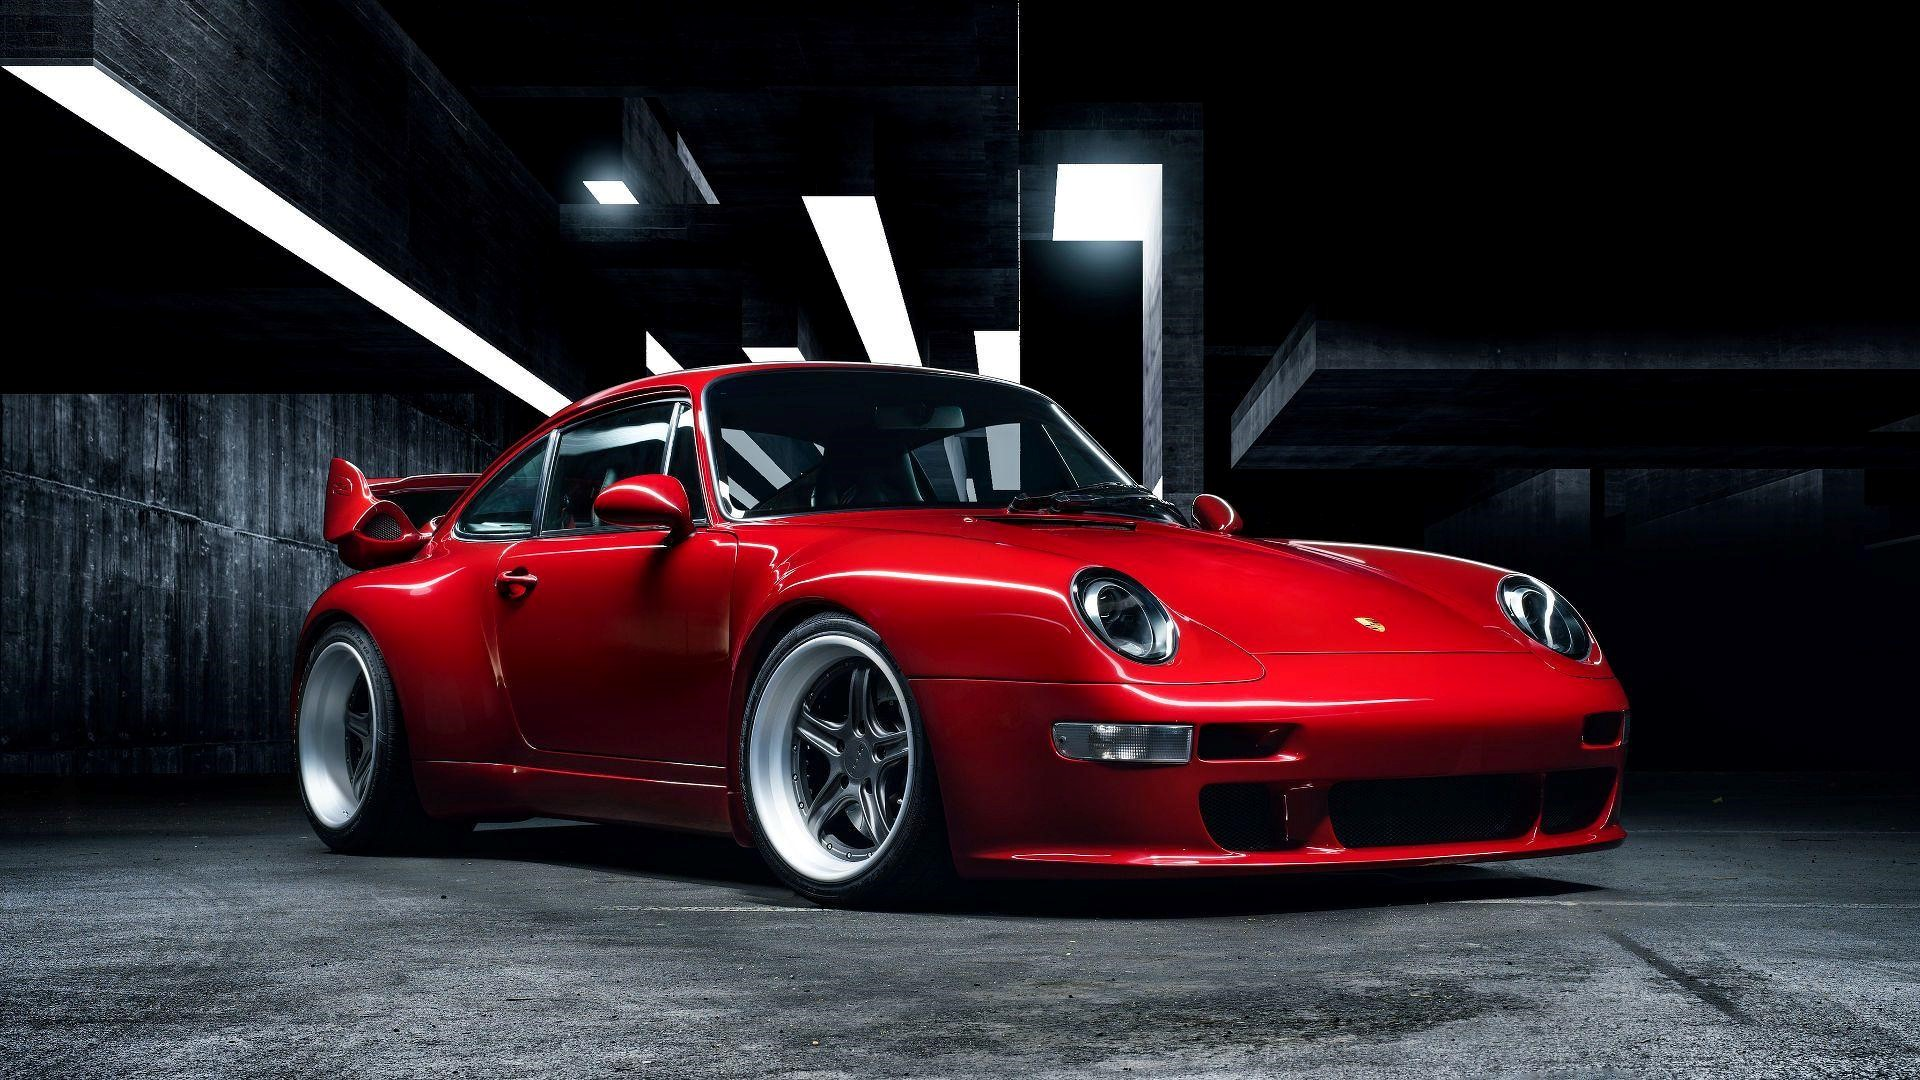 Guntherwerks 400r A Beautifully Modified Porsche 911 993 Vehiclejar Blog